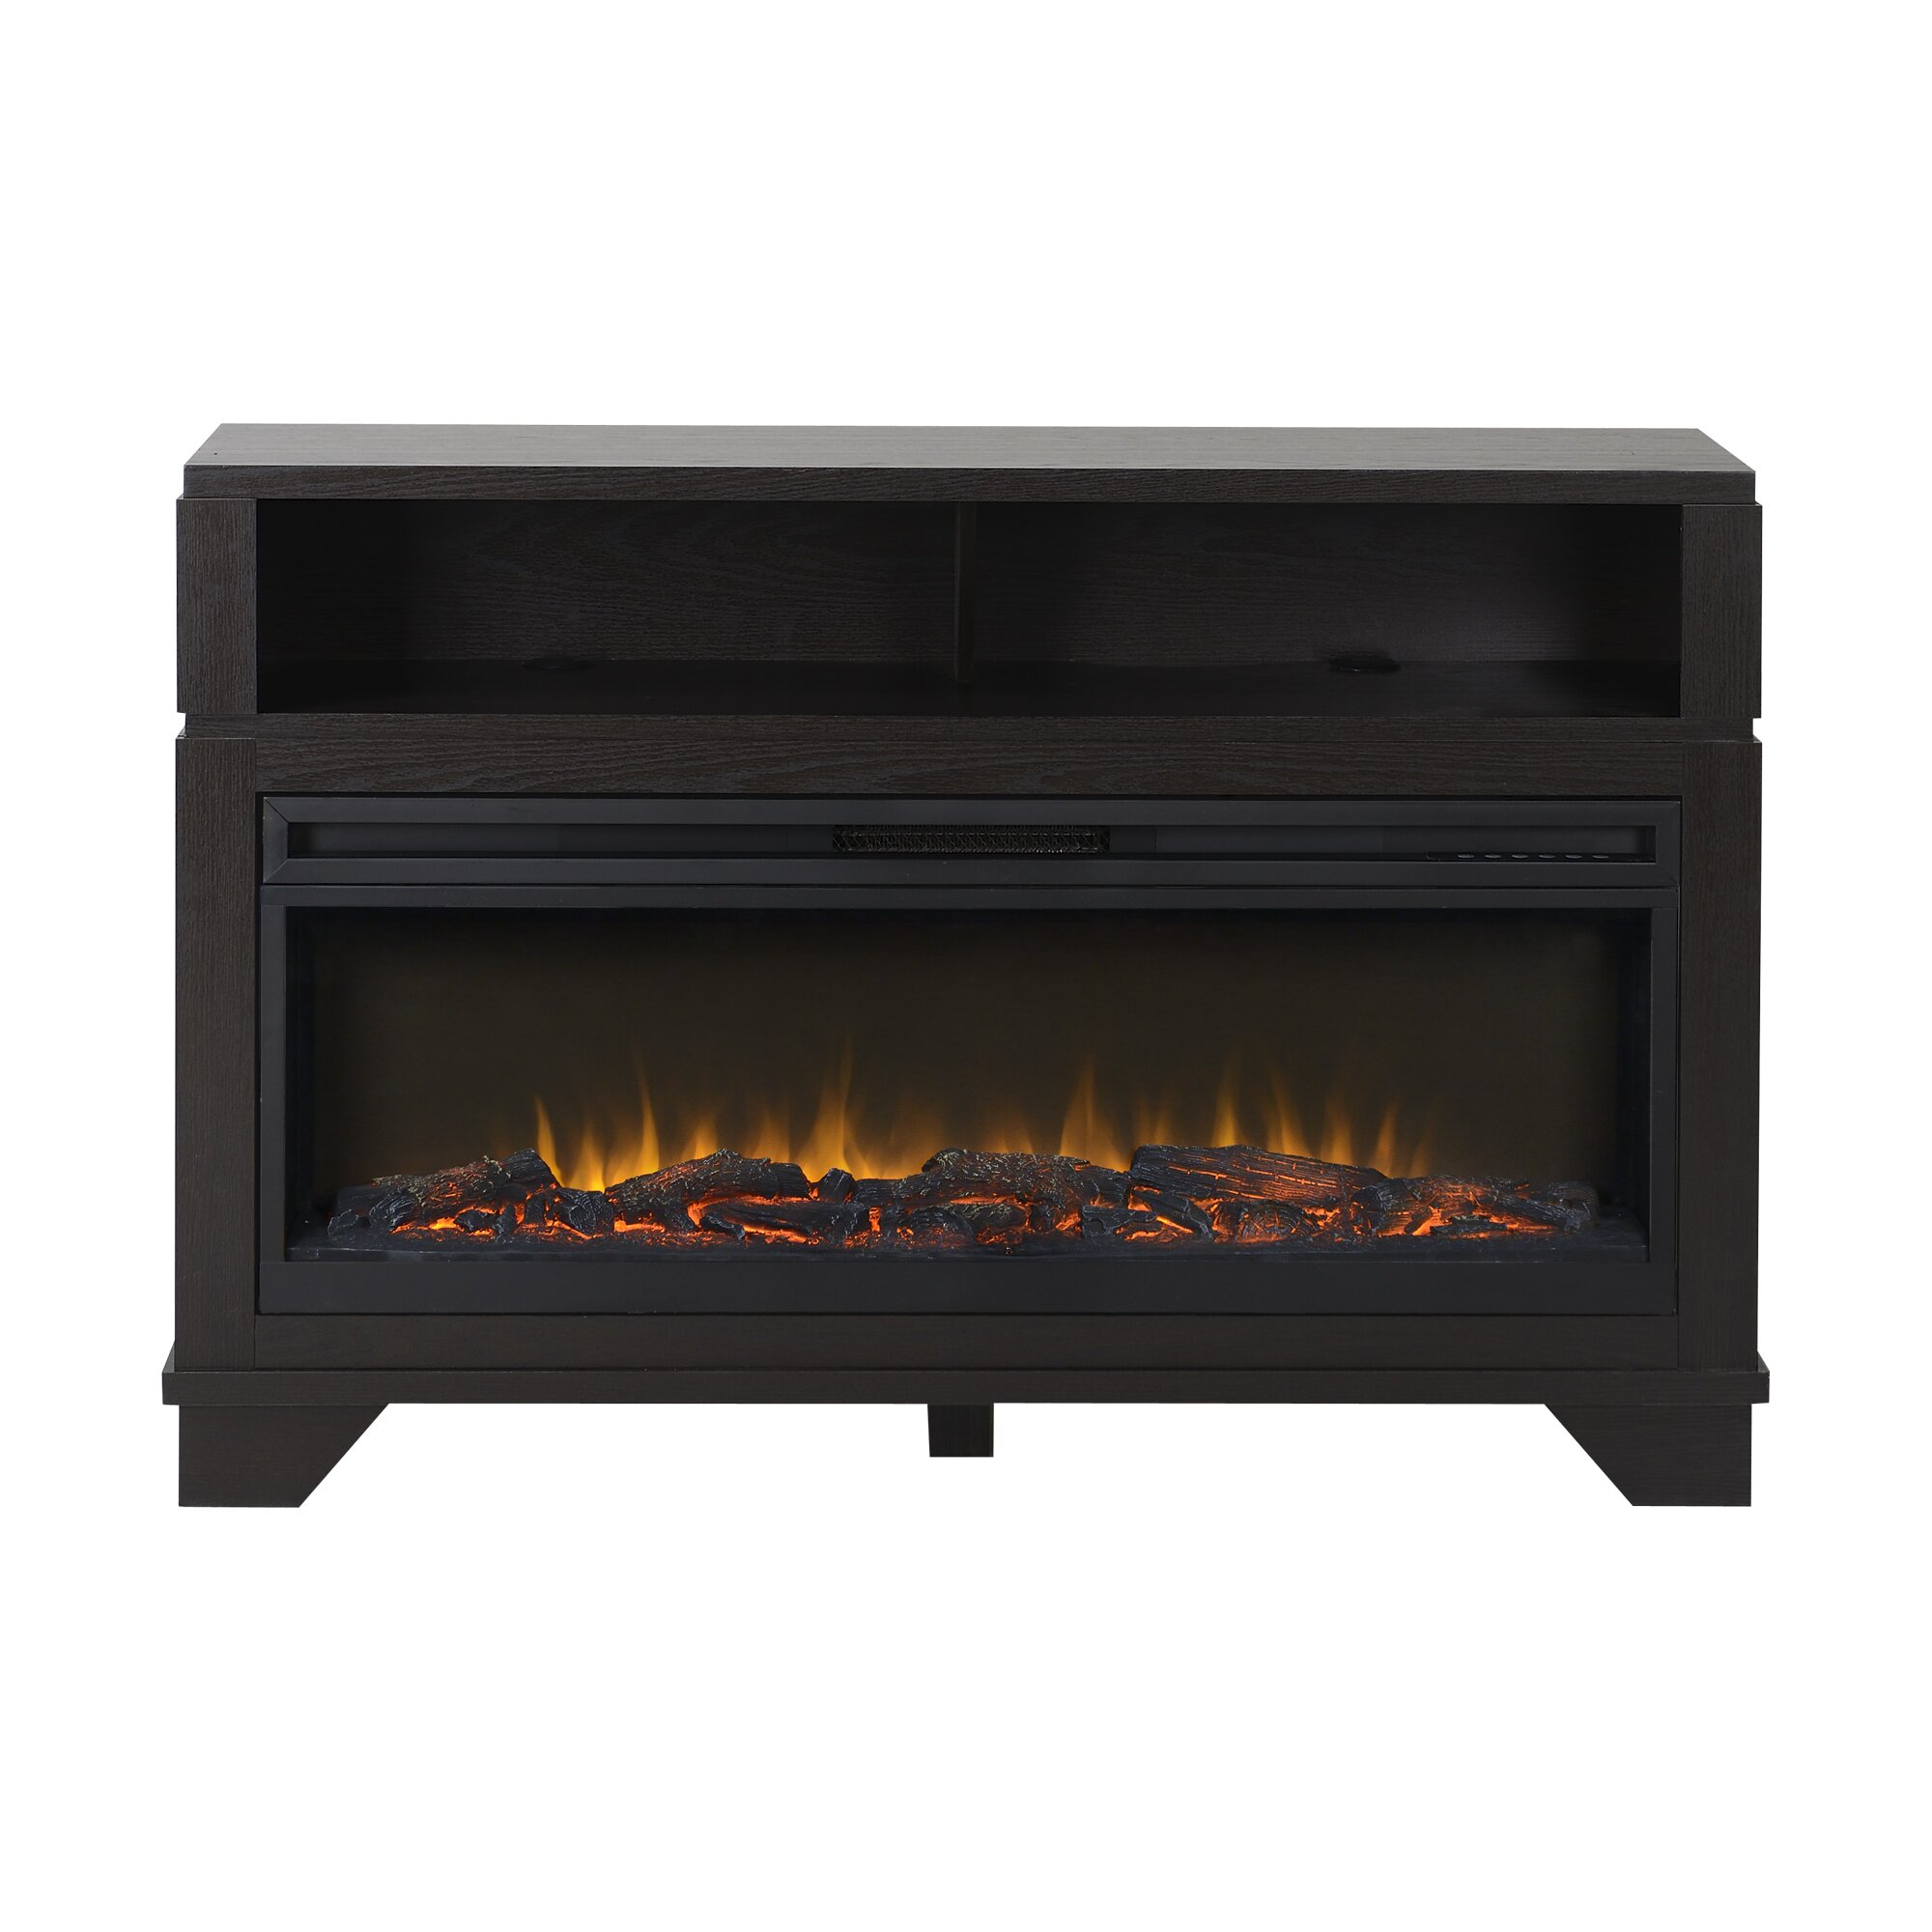 Homestar Nereto Tv Stand With Electric Fireplace Reviews Wayfair